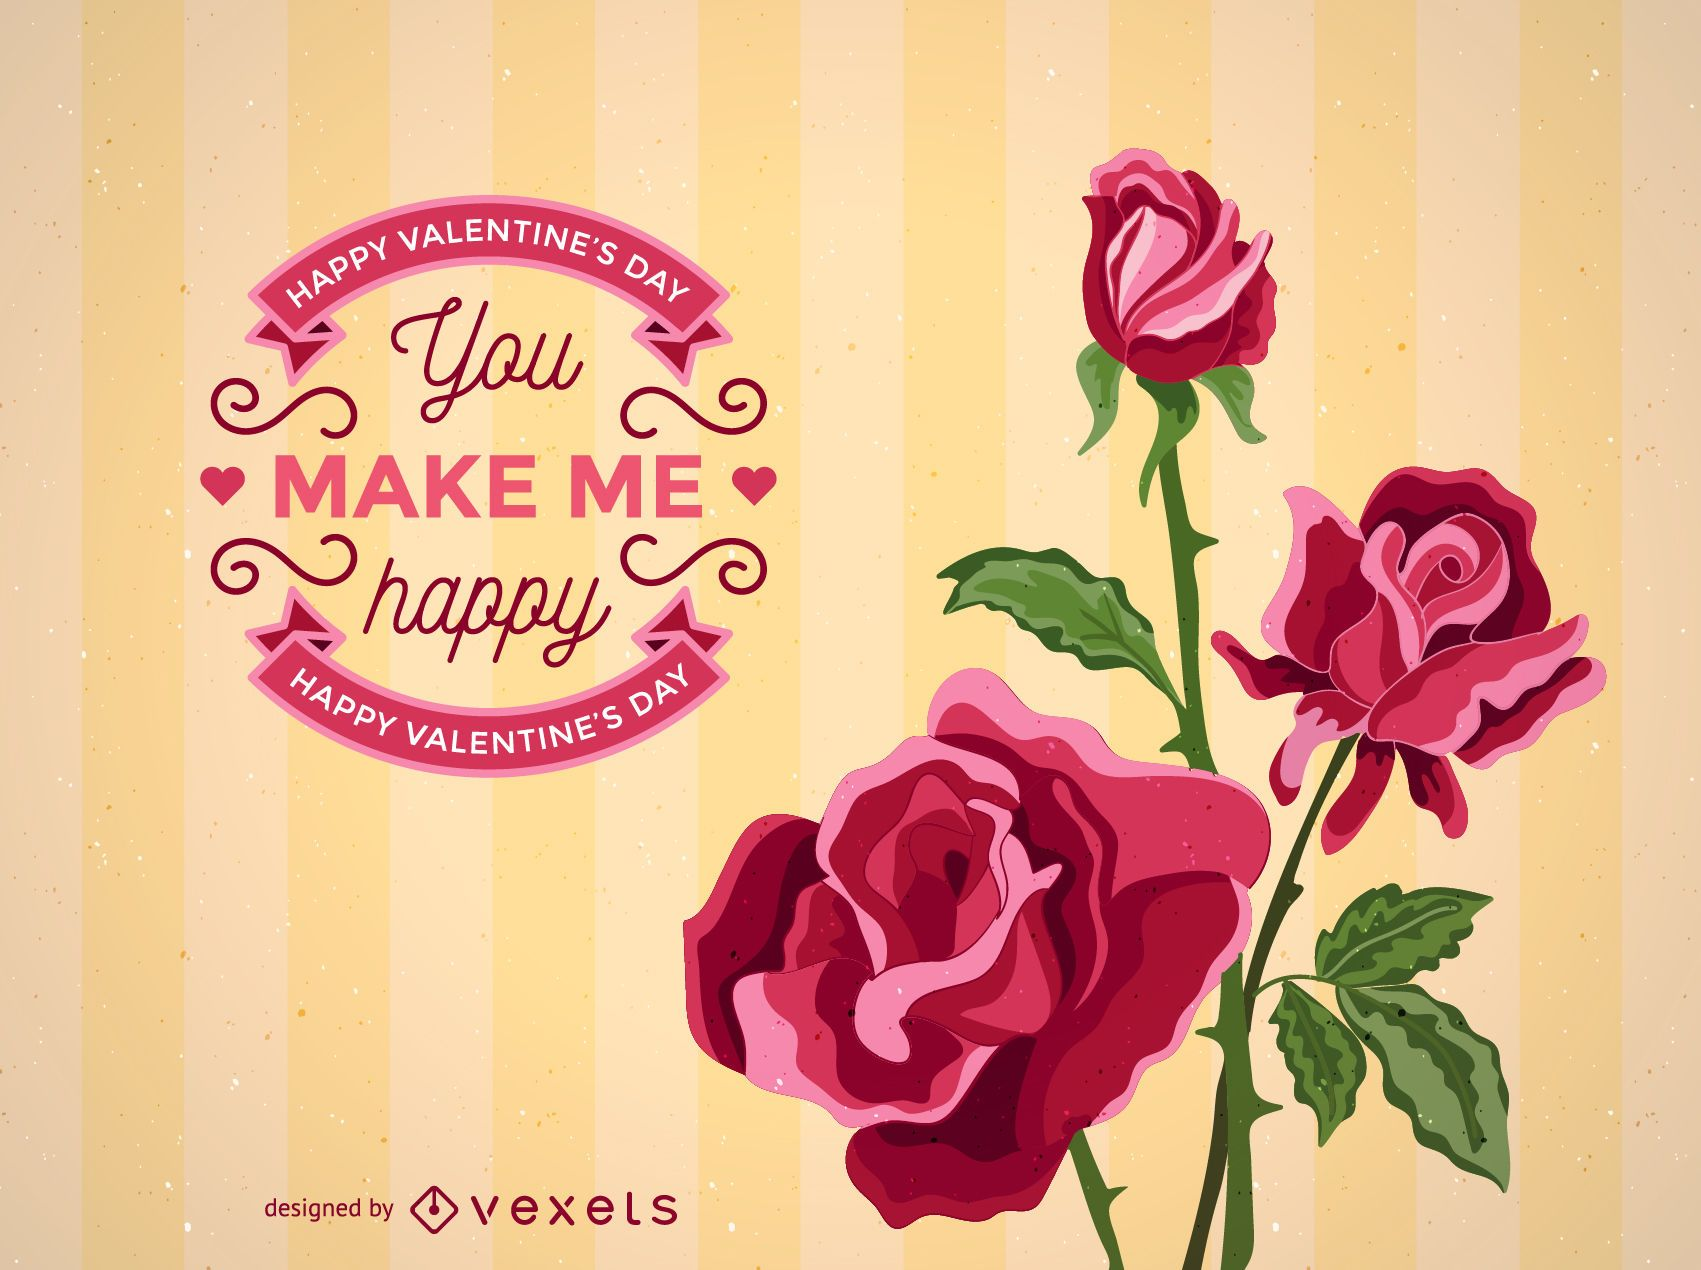 Realistic roses valentine card template vector download realistic roses valentine card template download large image 1701x1270px maxwellsz